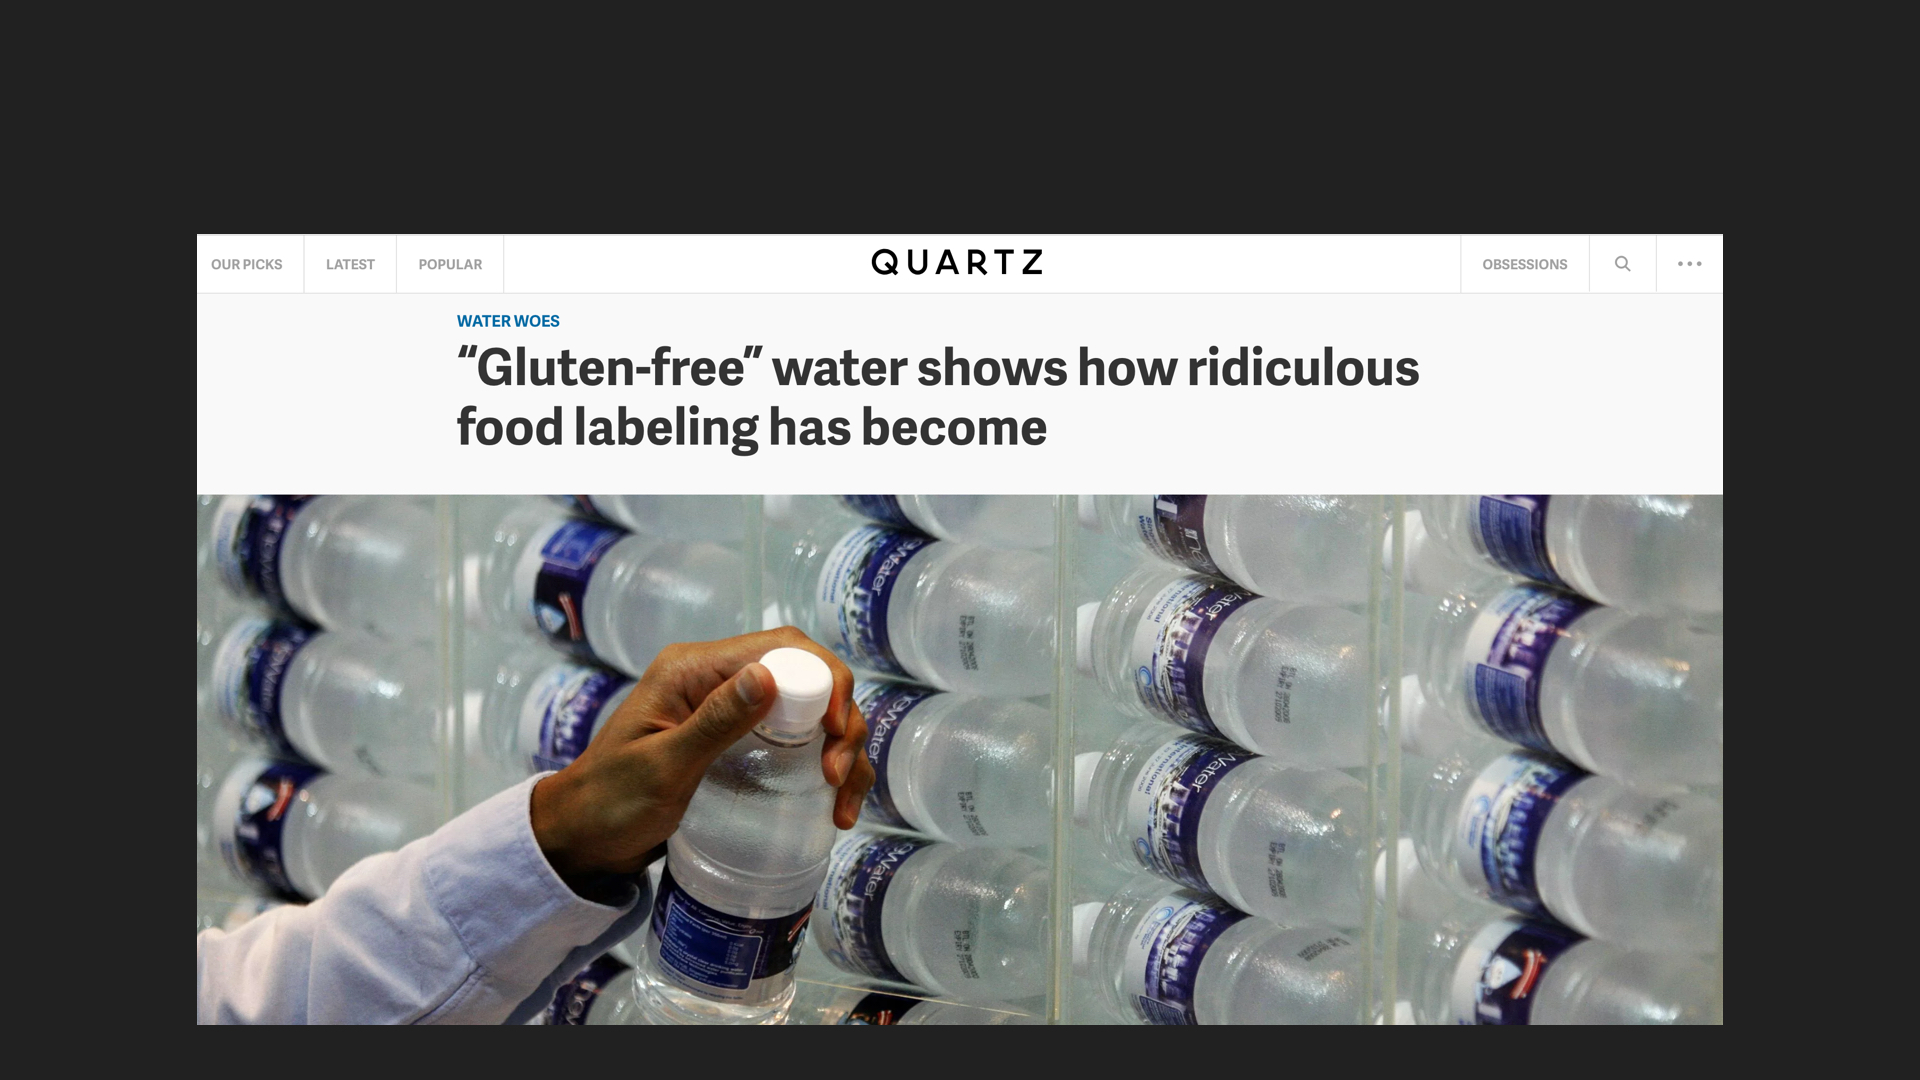 To a point where it has become meaningless. Does gluten-infused water even exist?